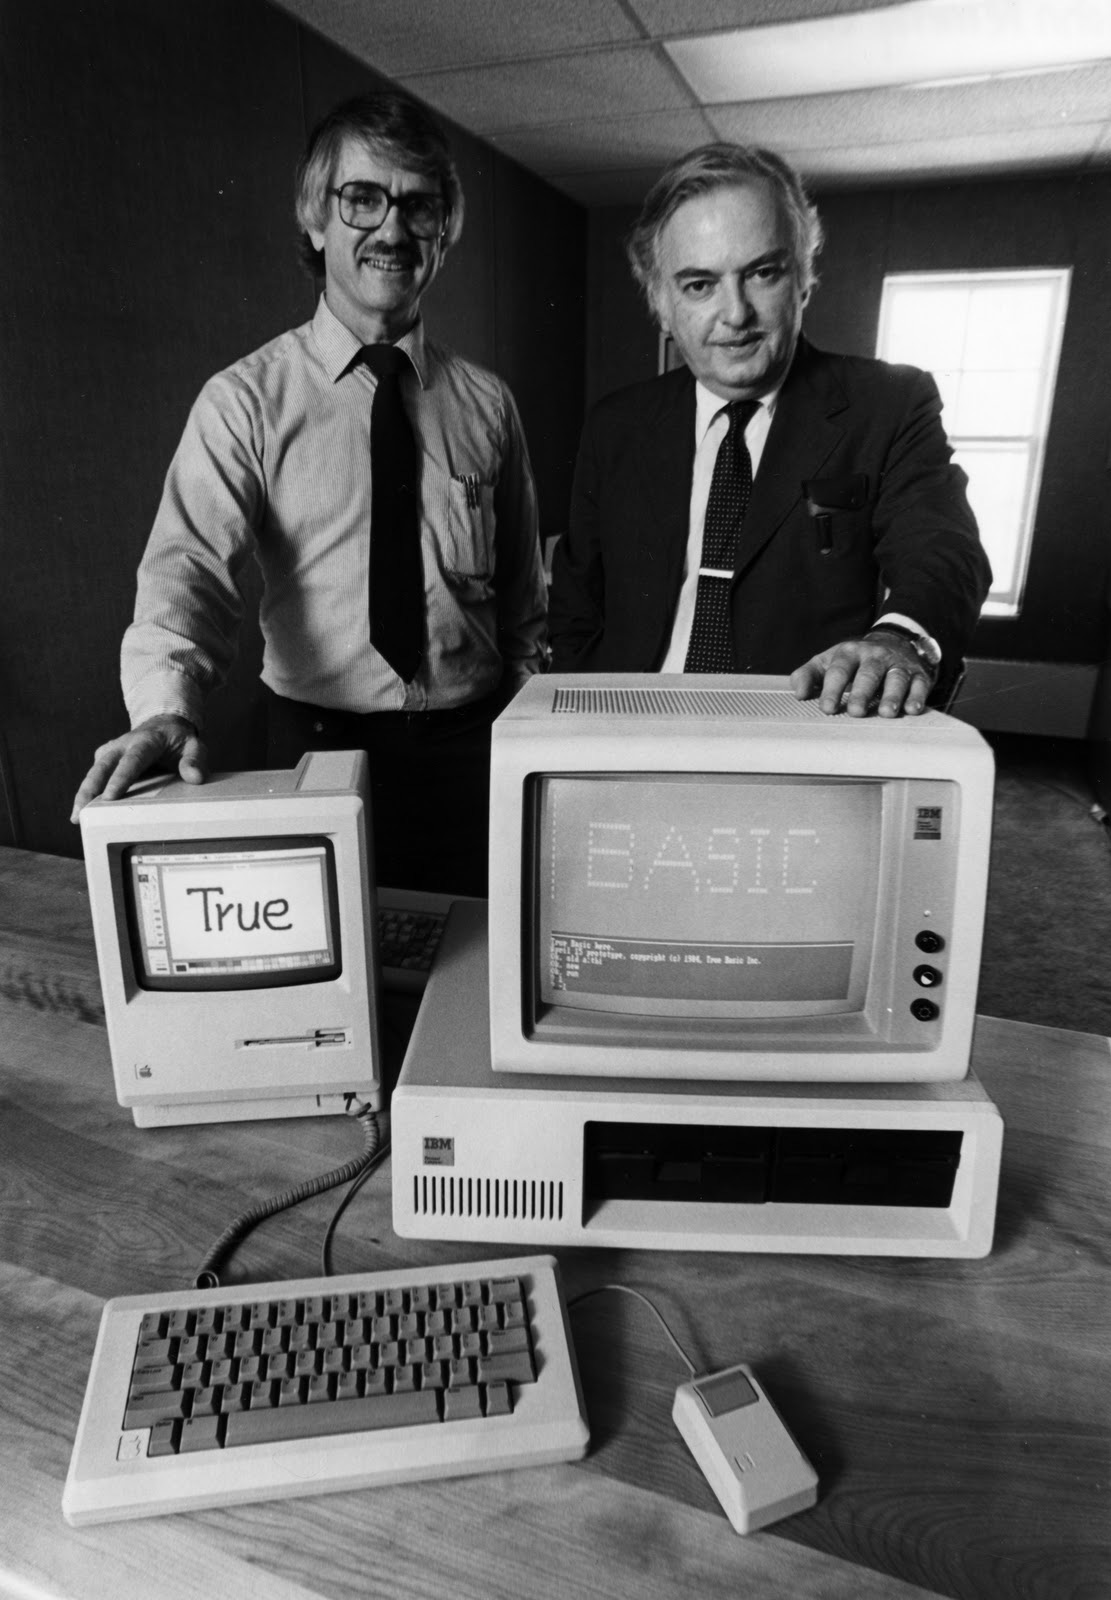 BASIC creators Thomas Kurtz (left) and John Kemeny in the mid-1980s, showing their True BASIC running on a Mac and an IBM PC